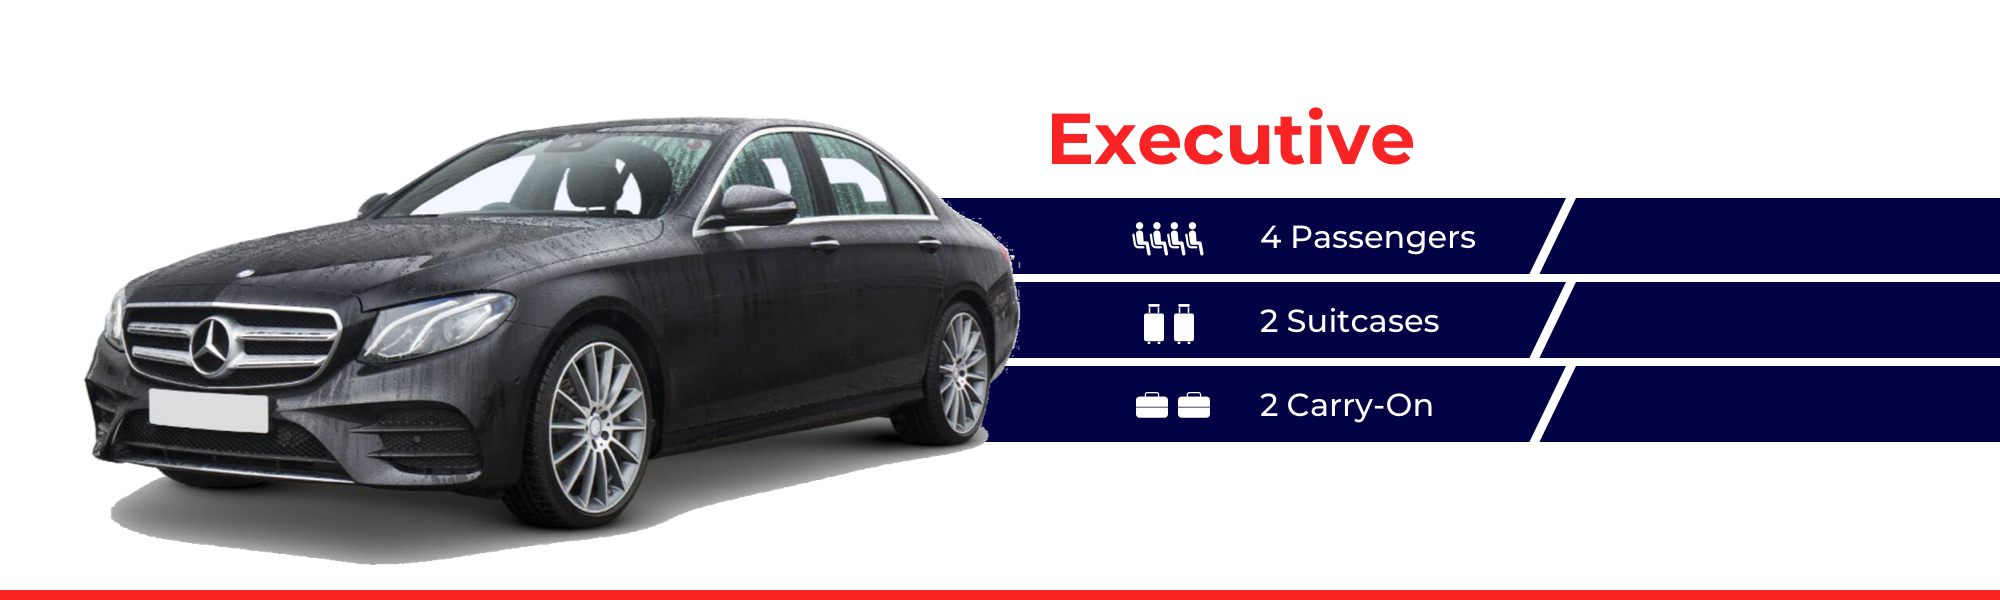 Executive Car Hire in Reading